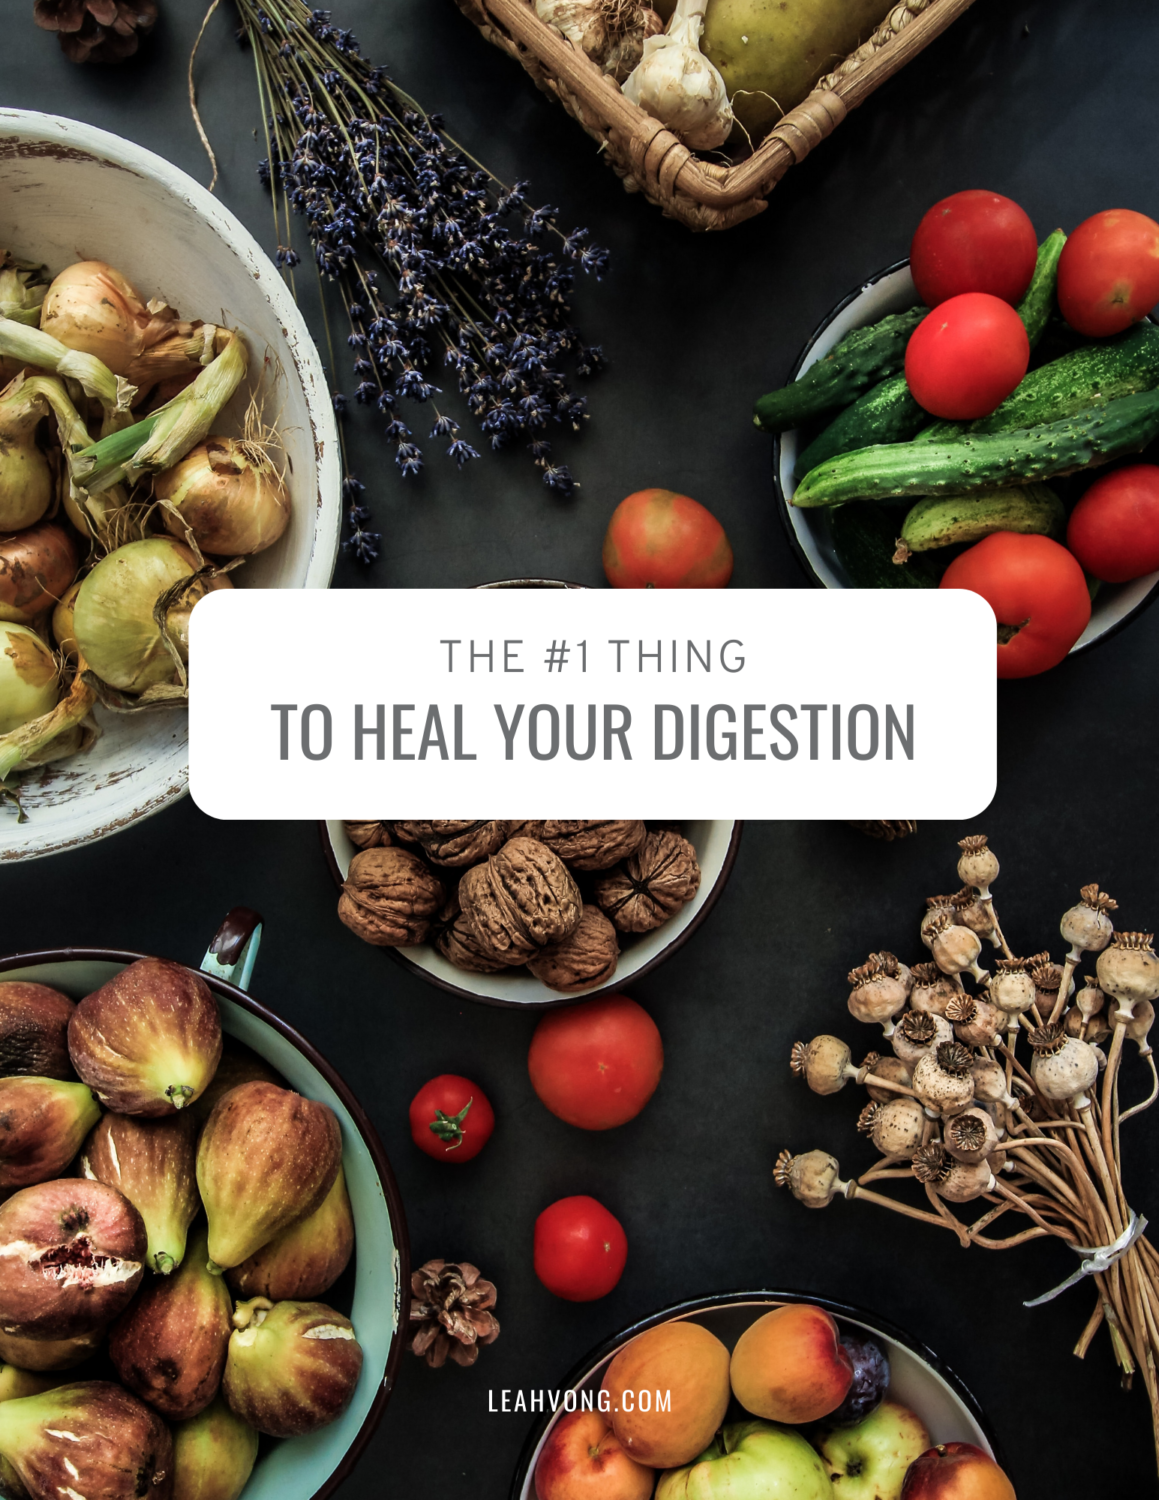 The number one thing to heal your digestion